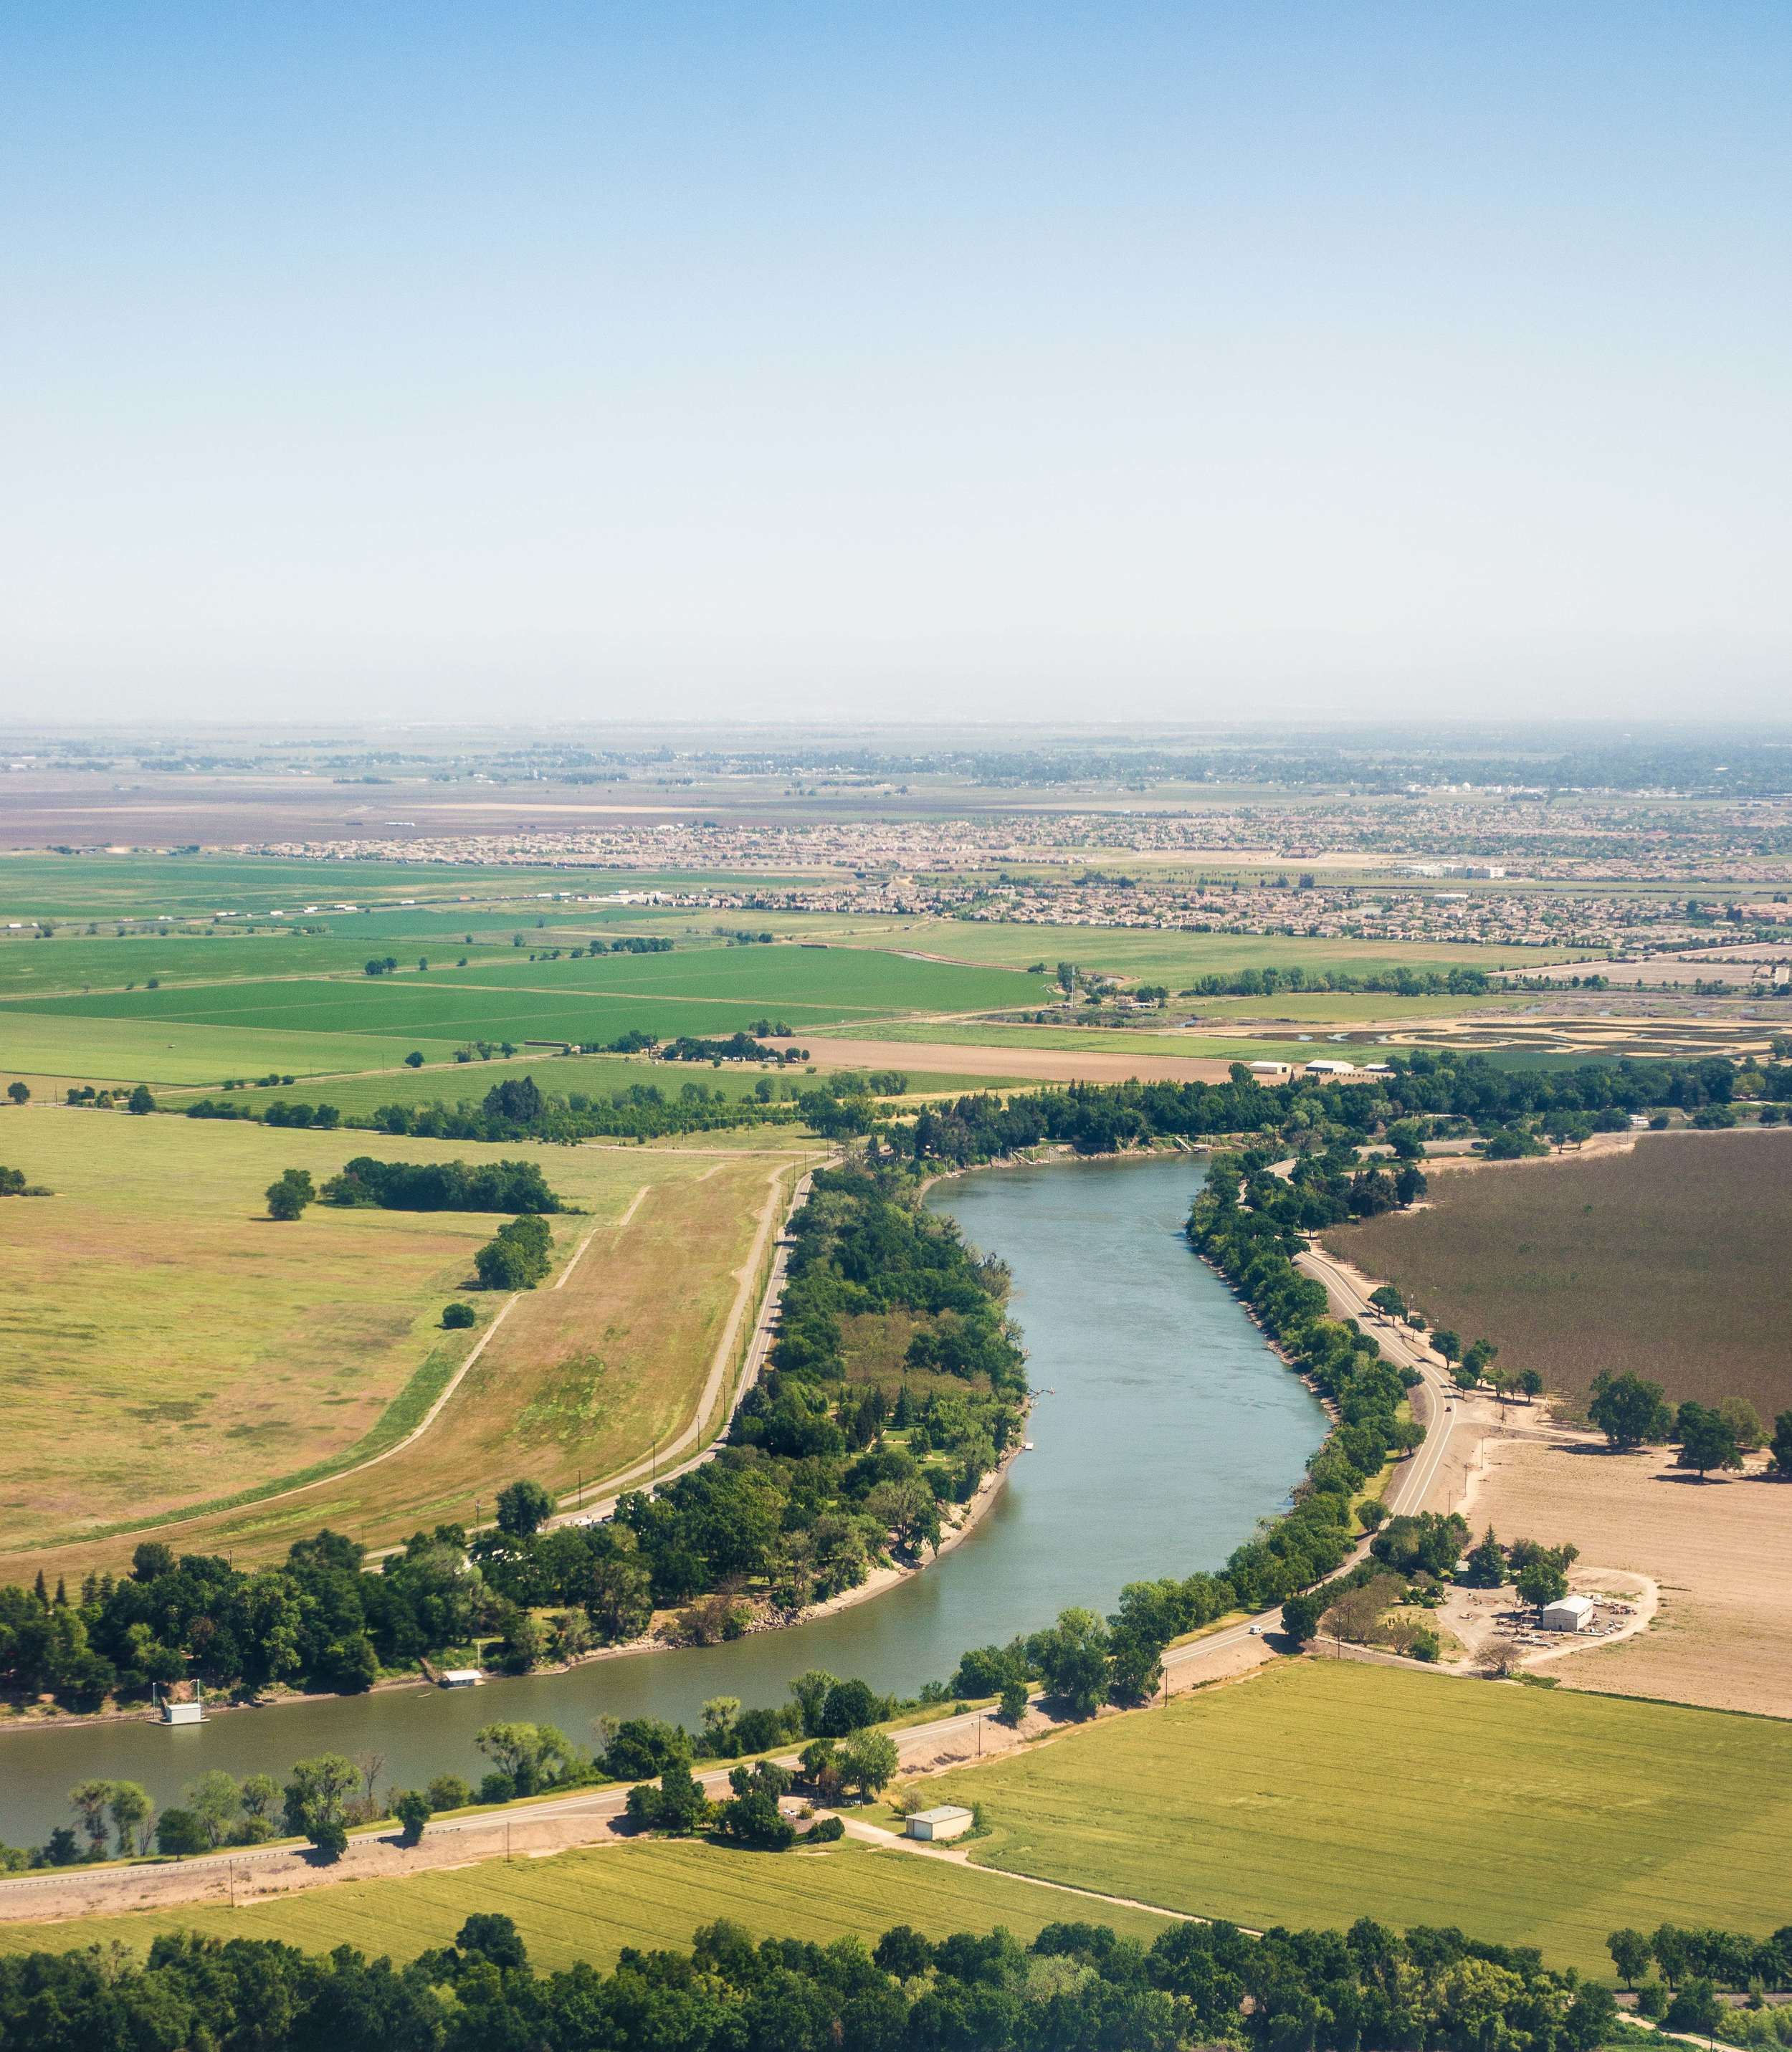 """CALIFORNIA WATER: """"PRIOR APPROPRIATION WATER RIGHTS AND MARKETS"""""""